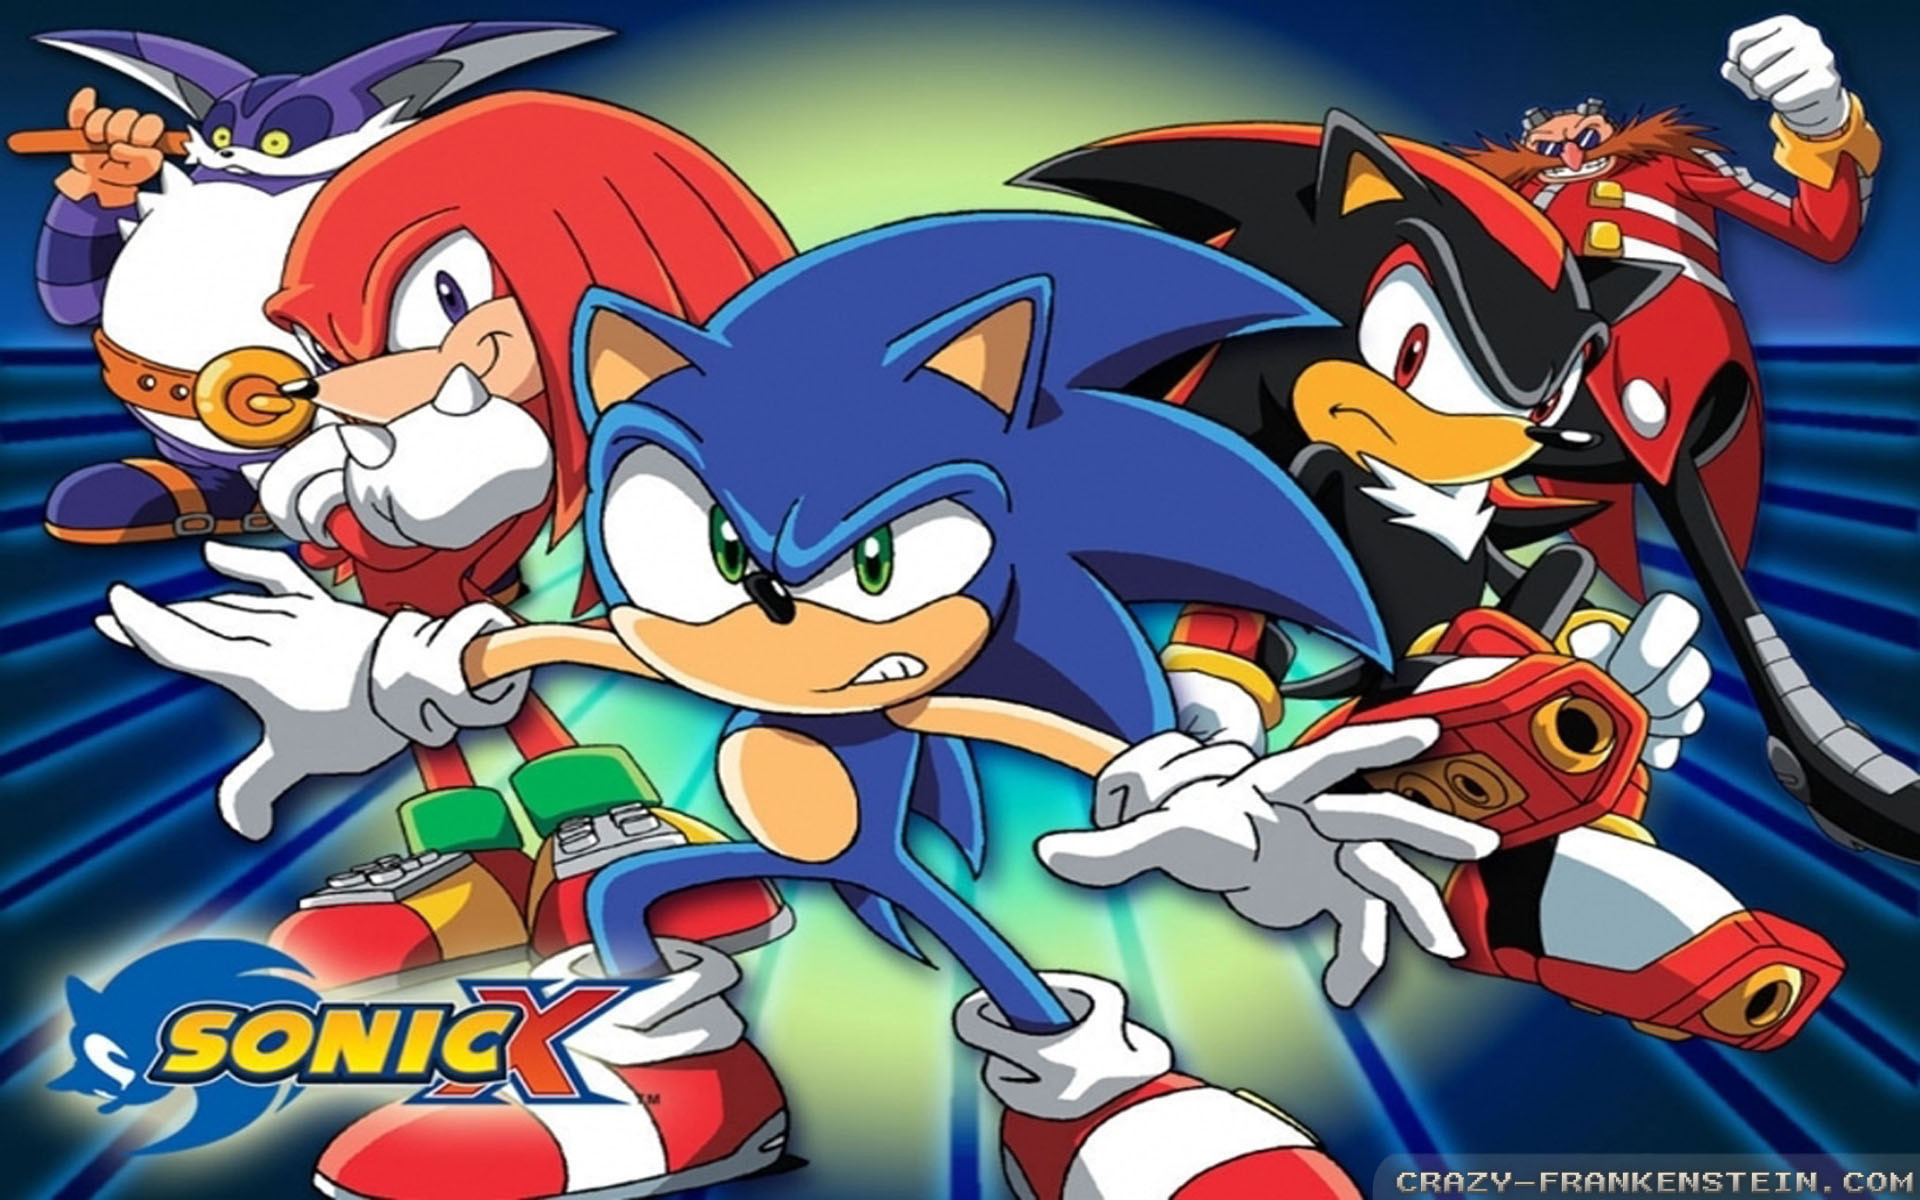 Fotos Do Sonic X within sonic x wallpaper (63+ images)